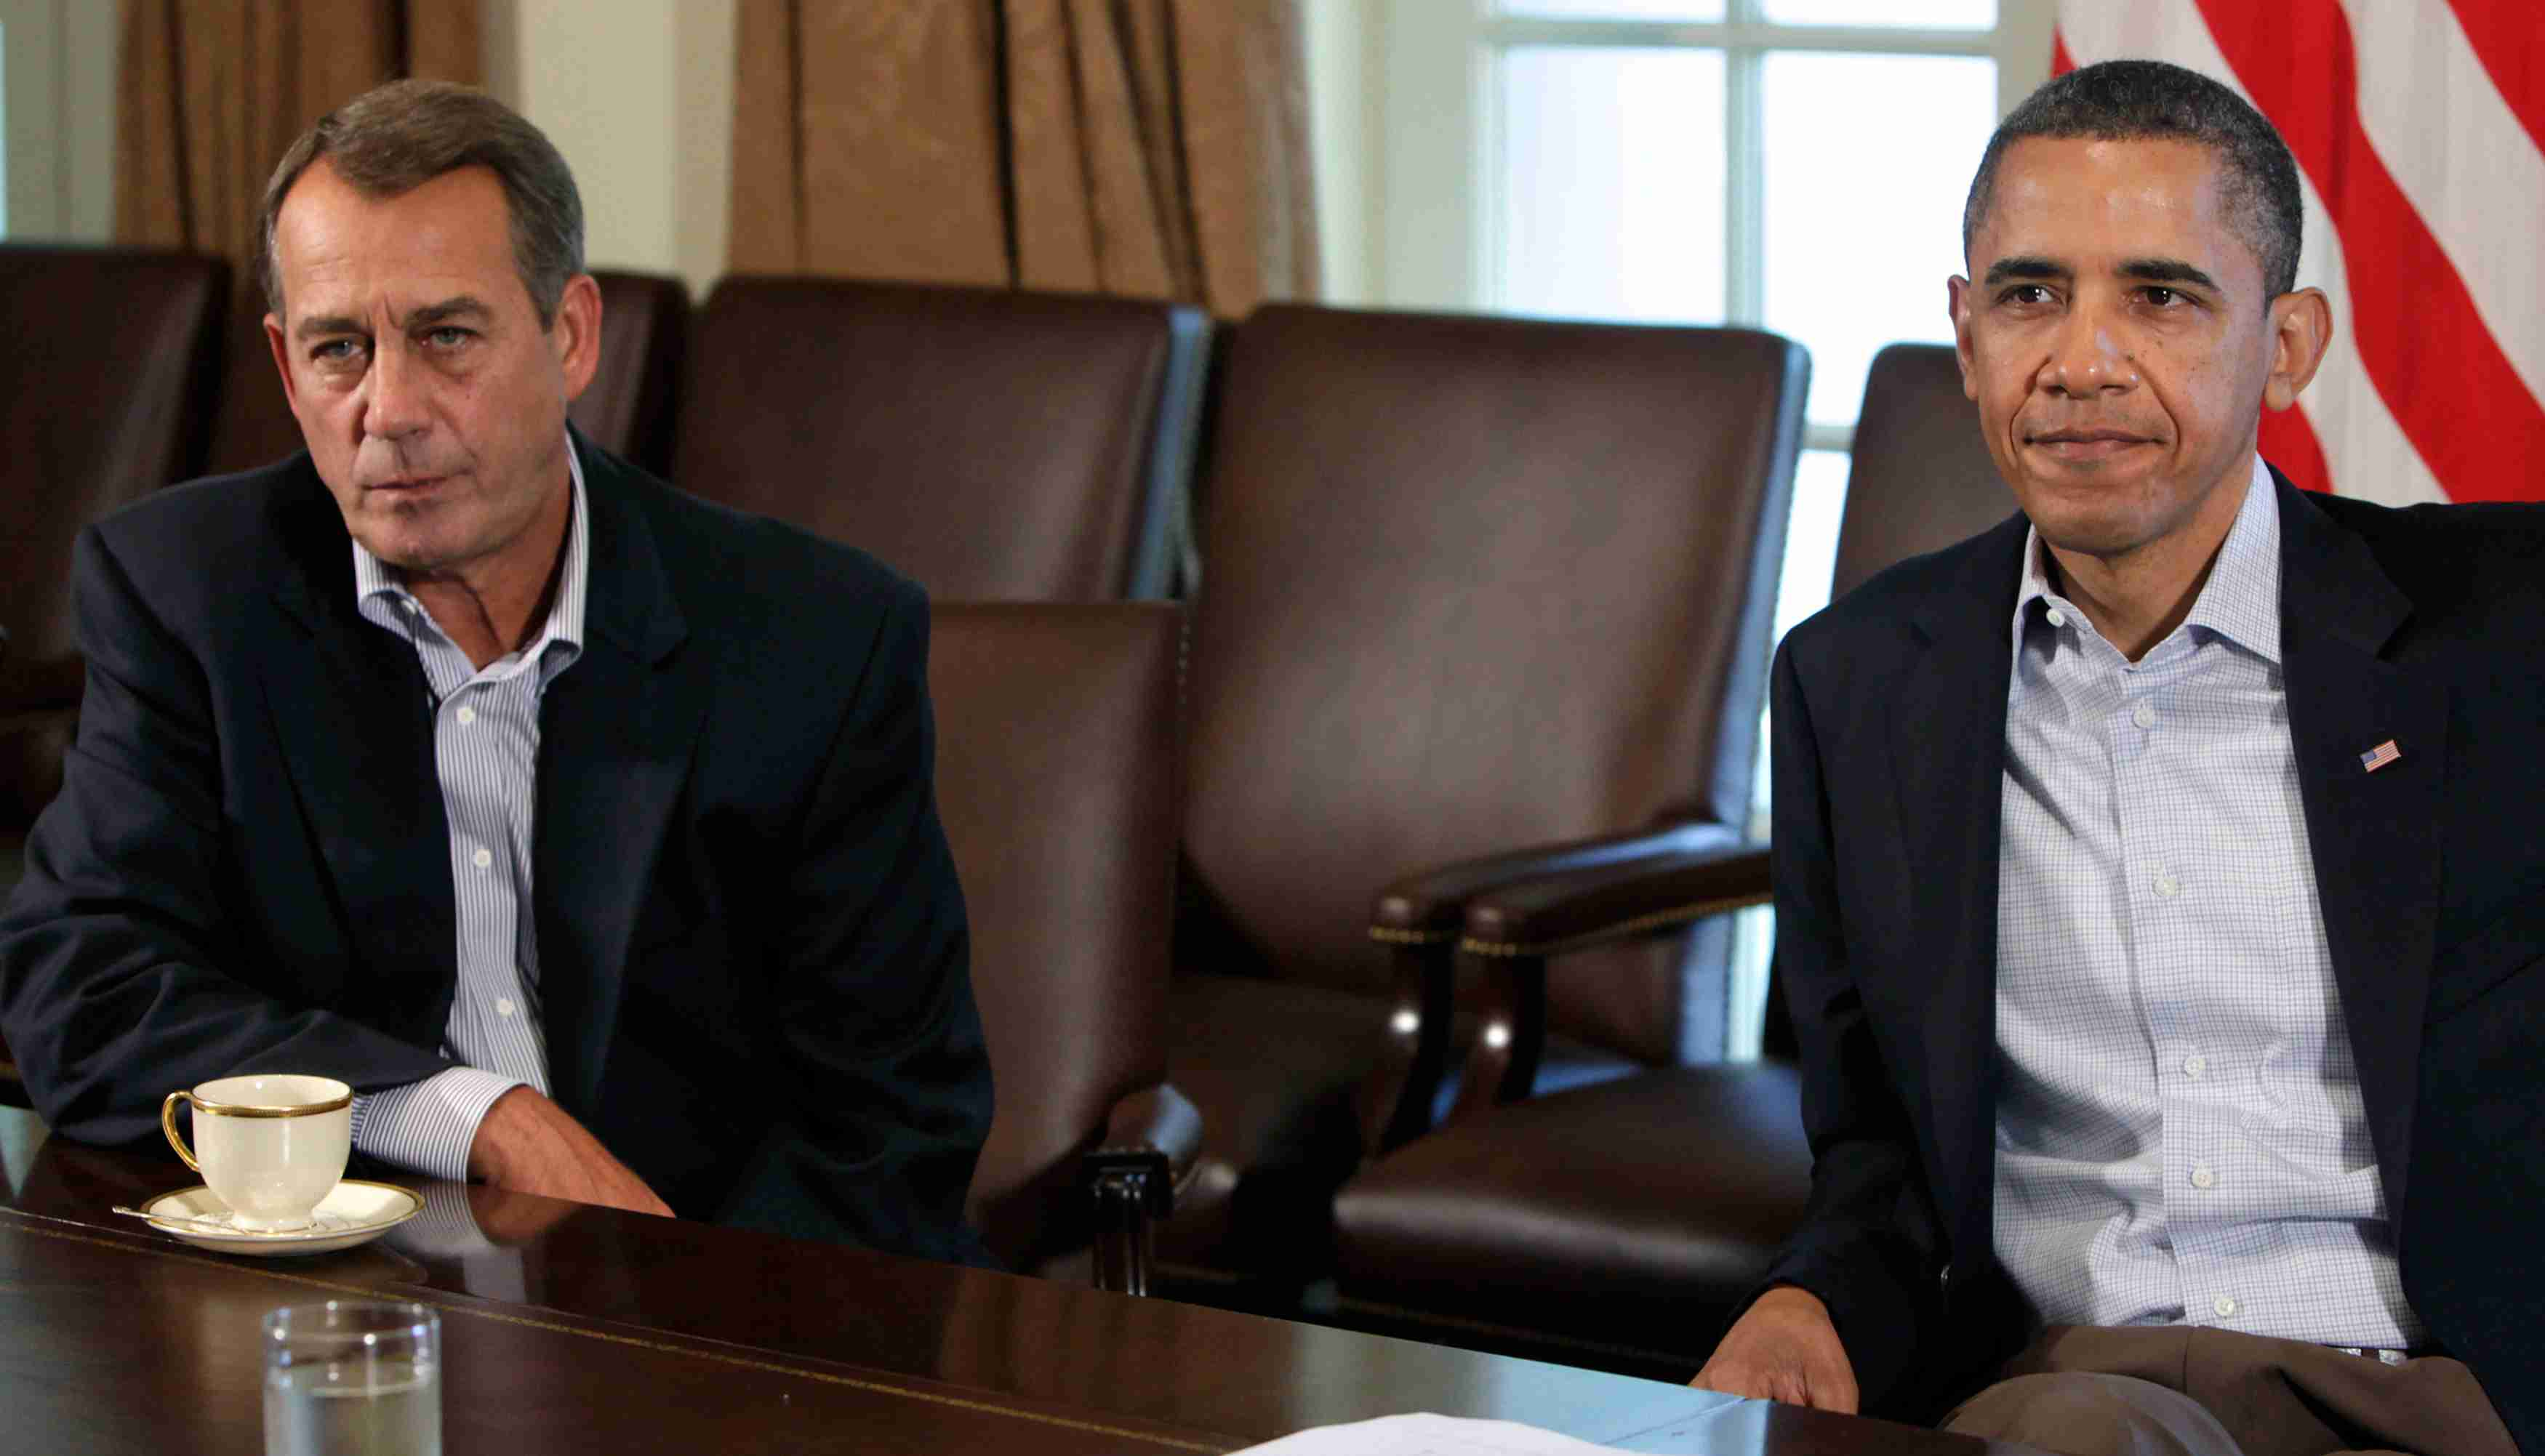 President Barack Obama meets with House Speaker John Boehner about the debt limit